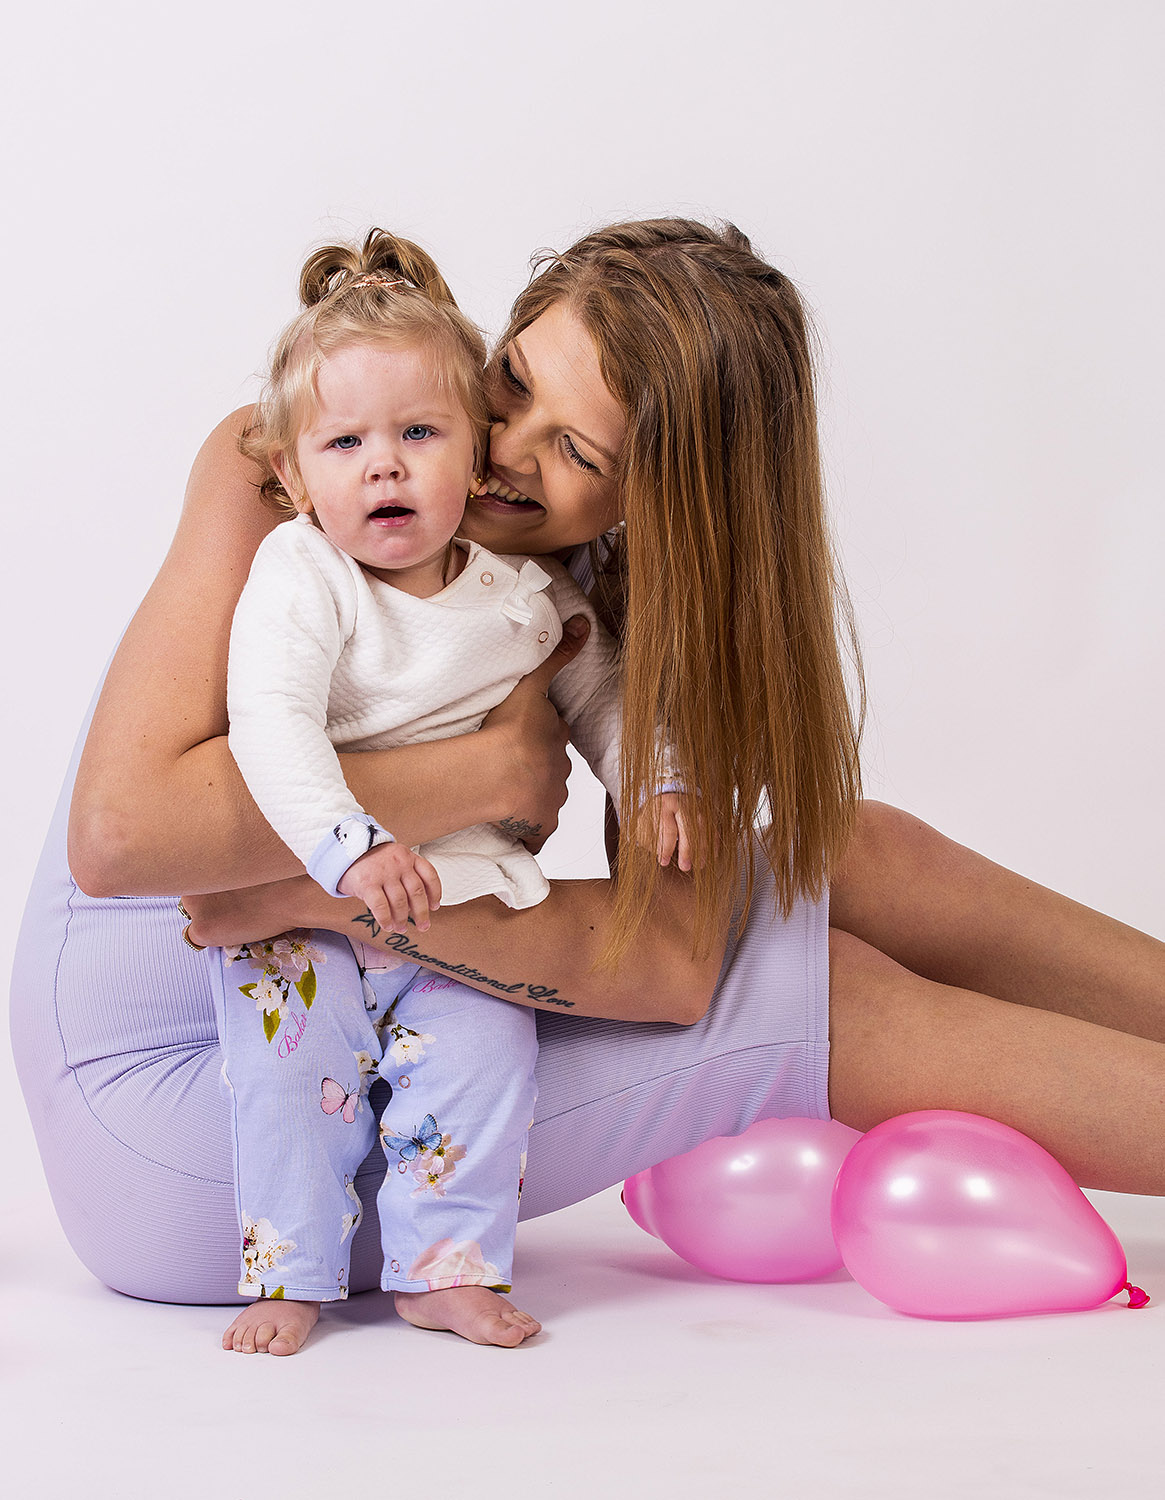 Affordable studio photography Sussex